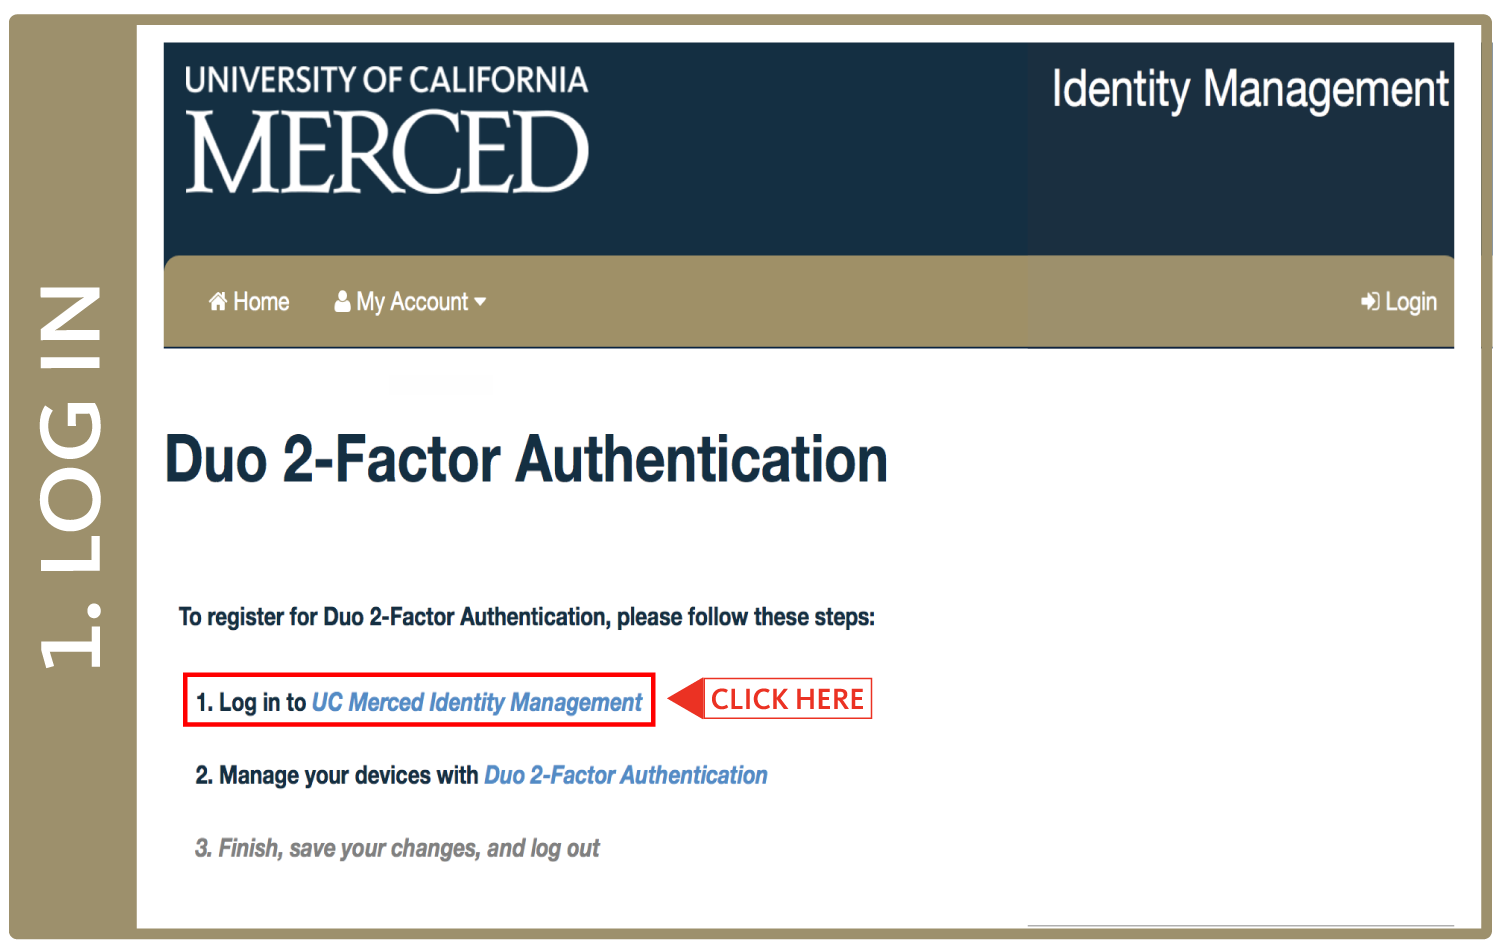 Click on UC Merced Identity Management.